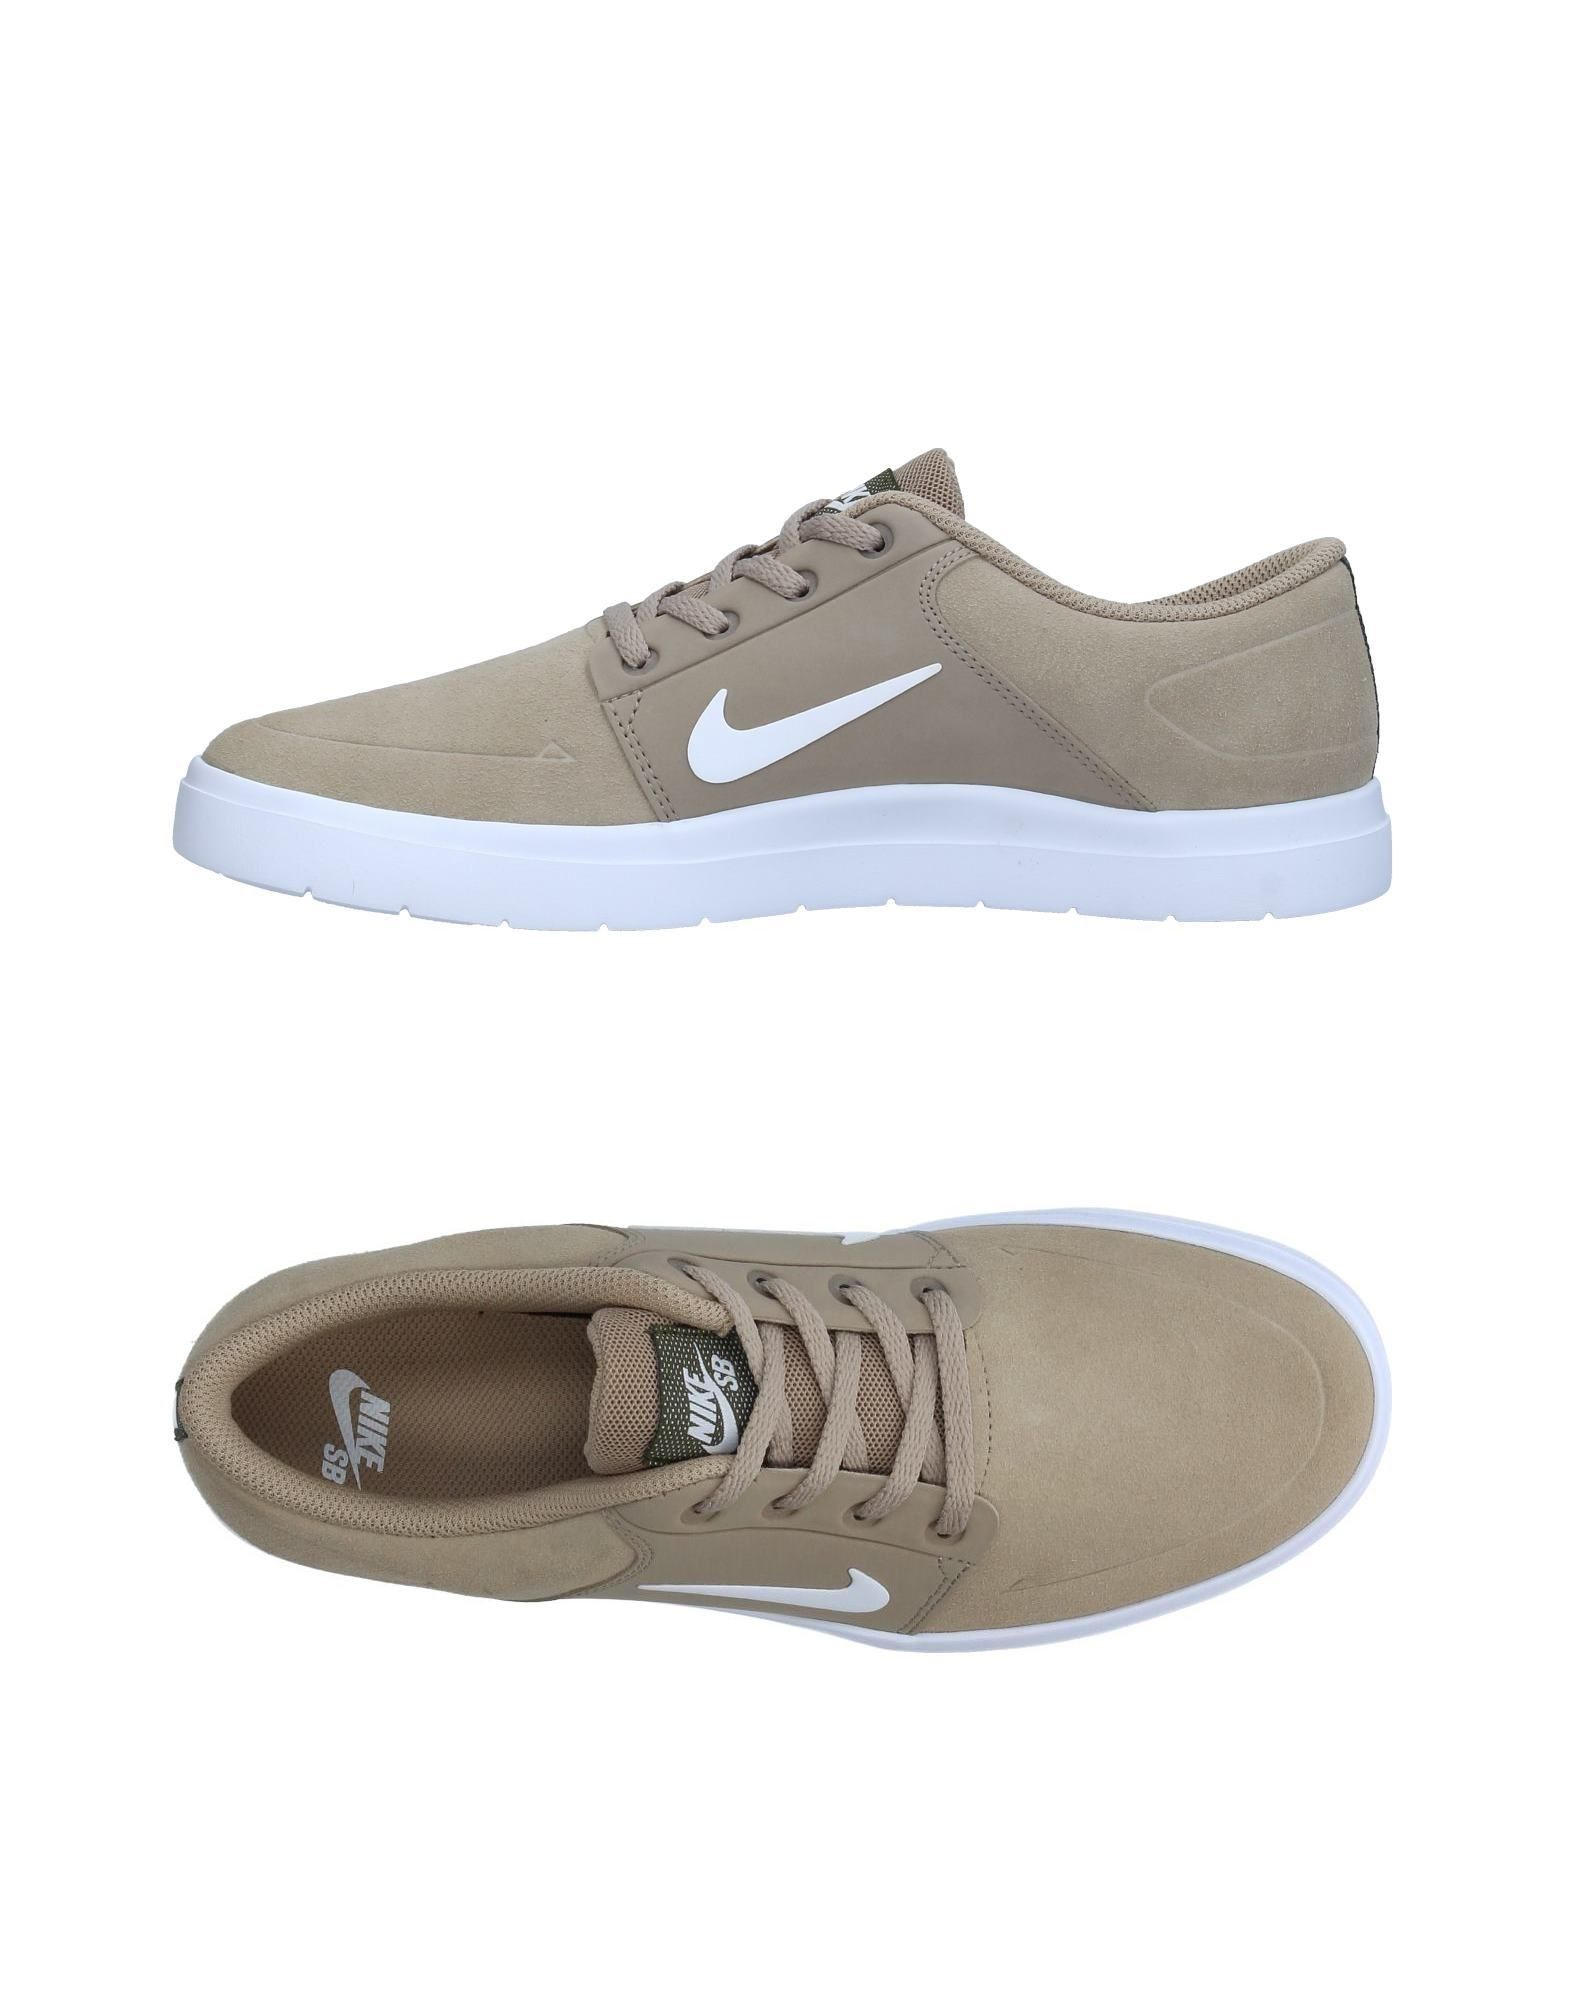 Sneakers Nike Sb Collection Uomo - 11335721PK